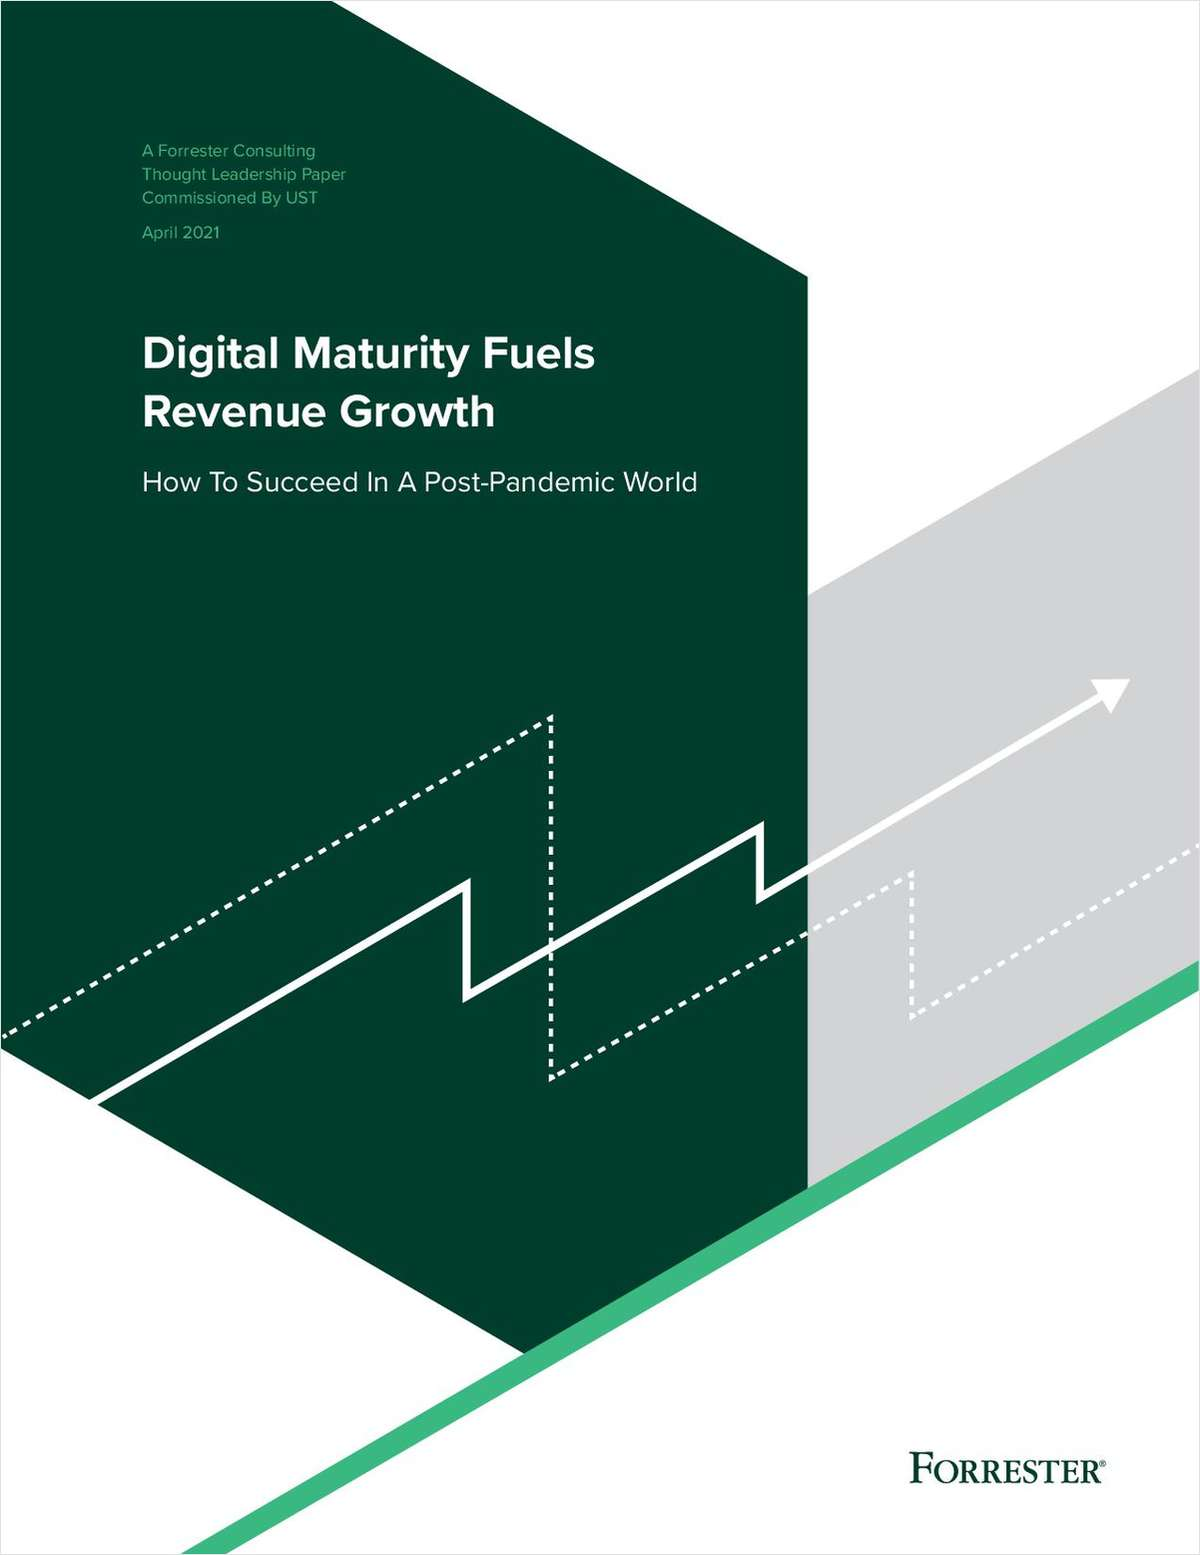 Forrester Consulting: Digital Maturity Fuels Growth, a Study commissioned by UST